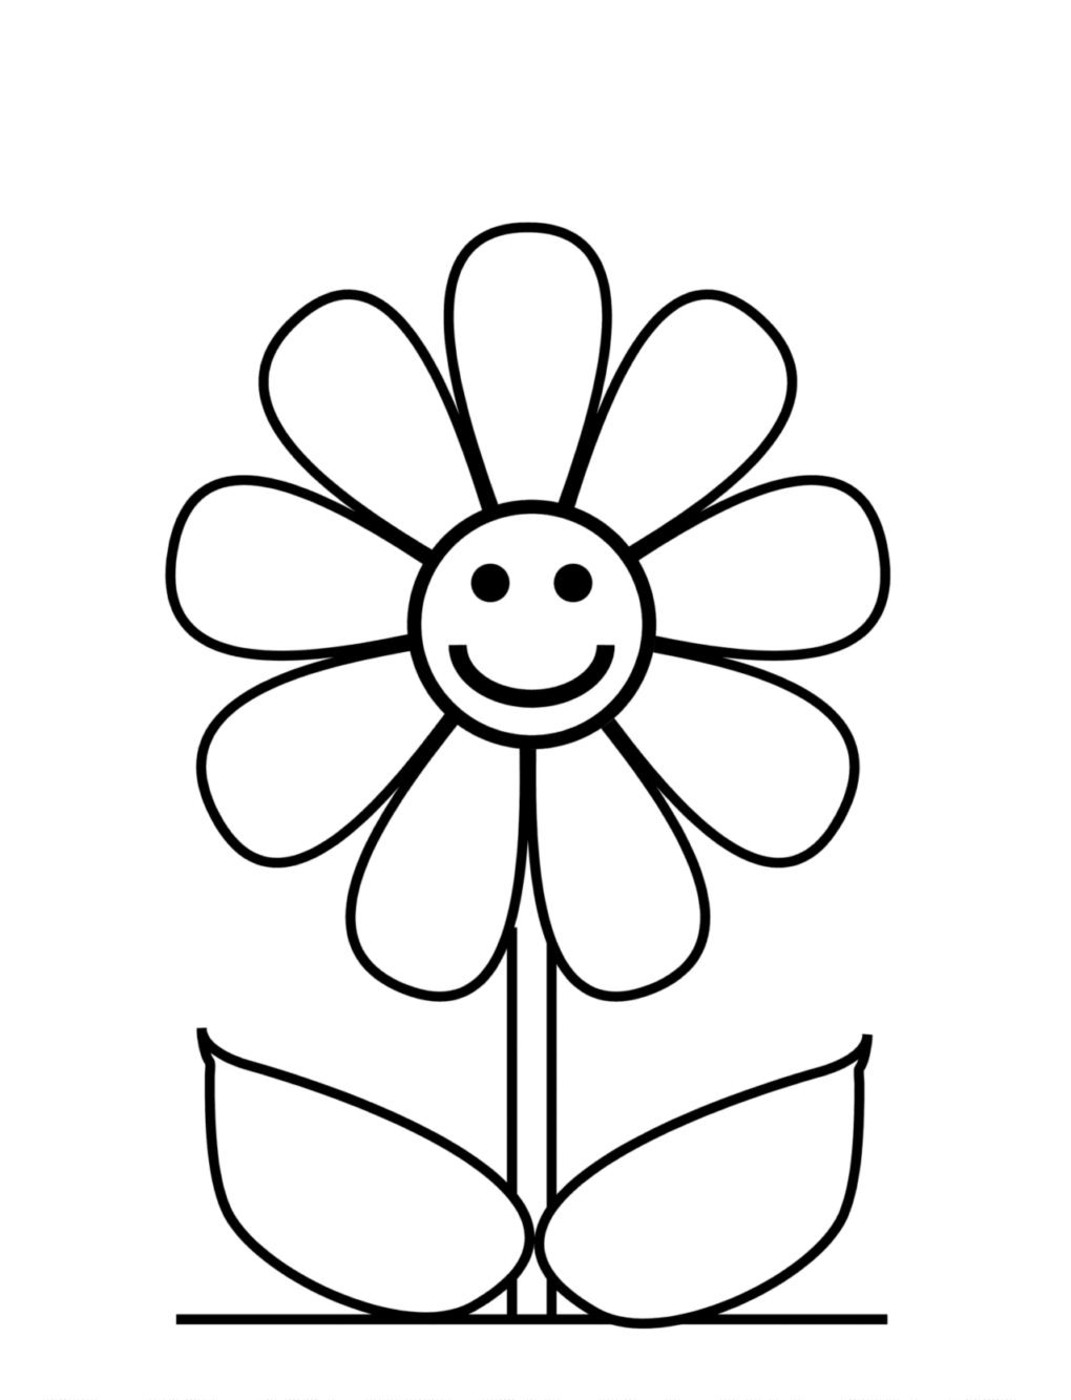 pictures of flowers to color free rainforest coloring pages free coloring pages flowers color to pictures of